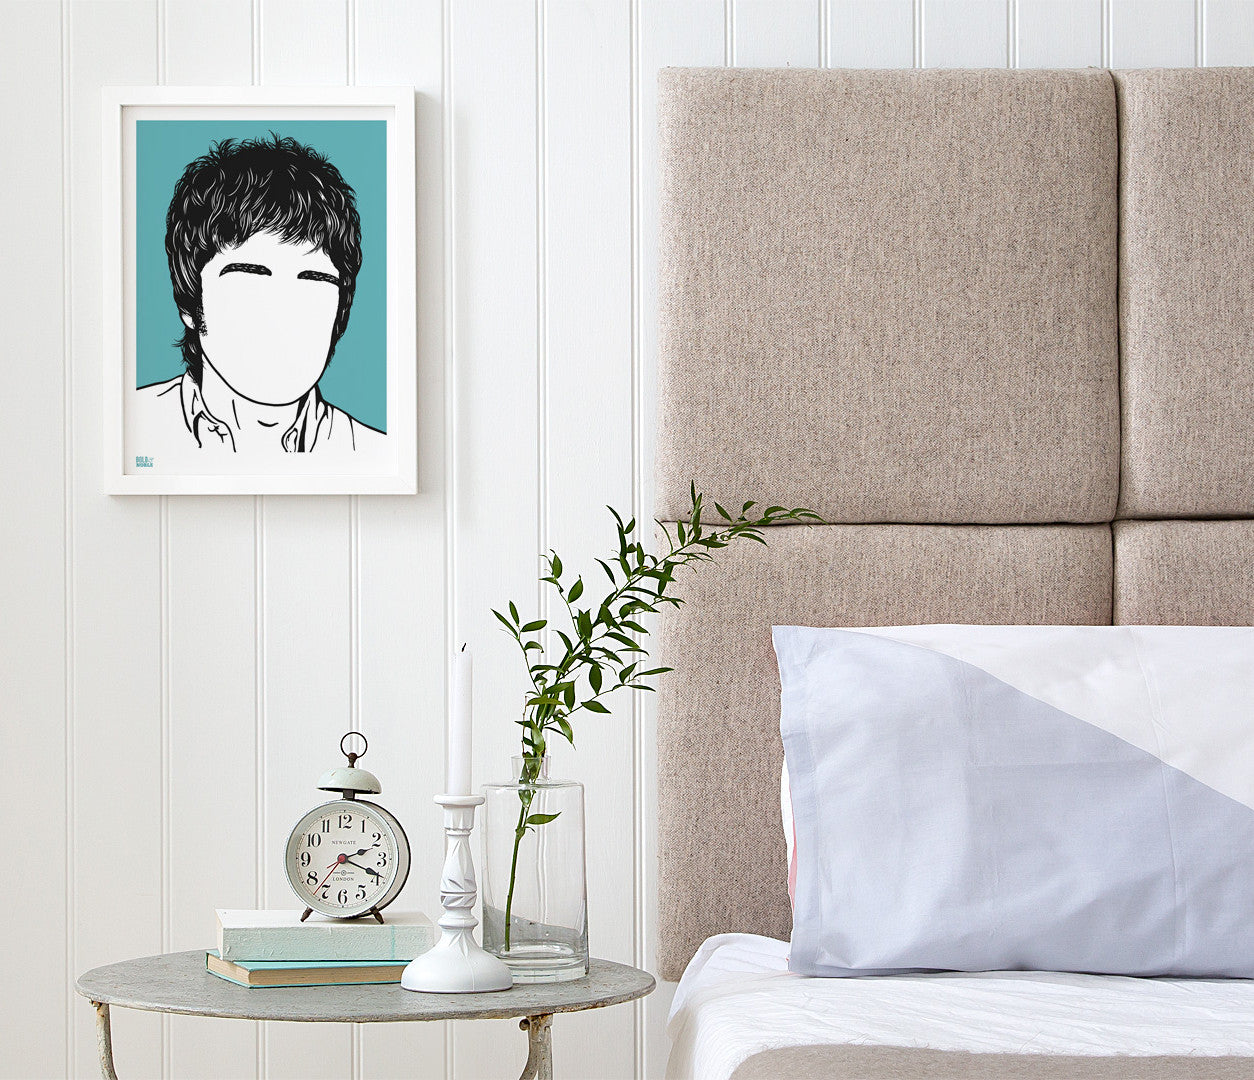 Pictures and Wall Art, Screen Printed Noel Gallagher Print in blue